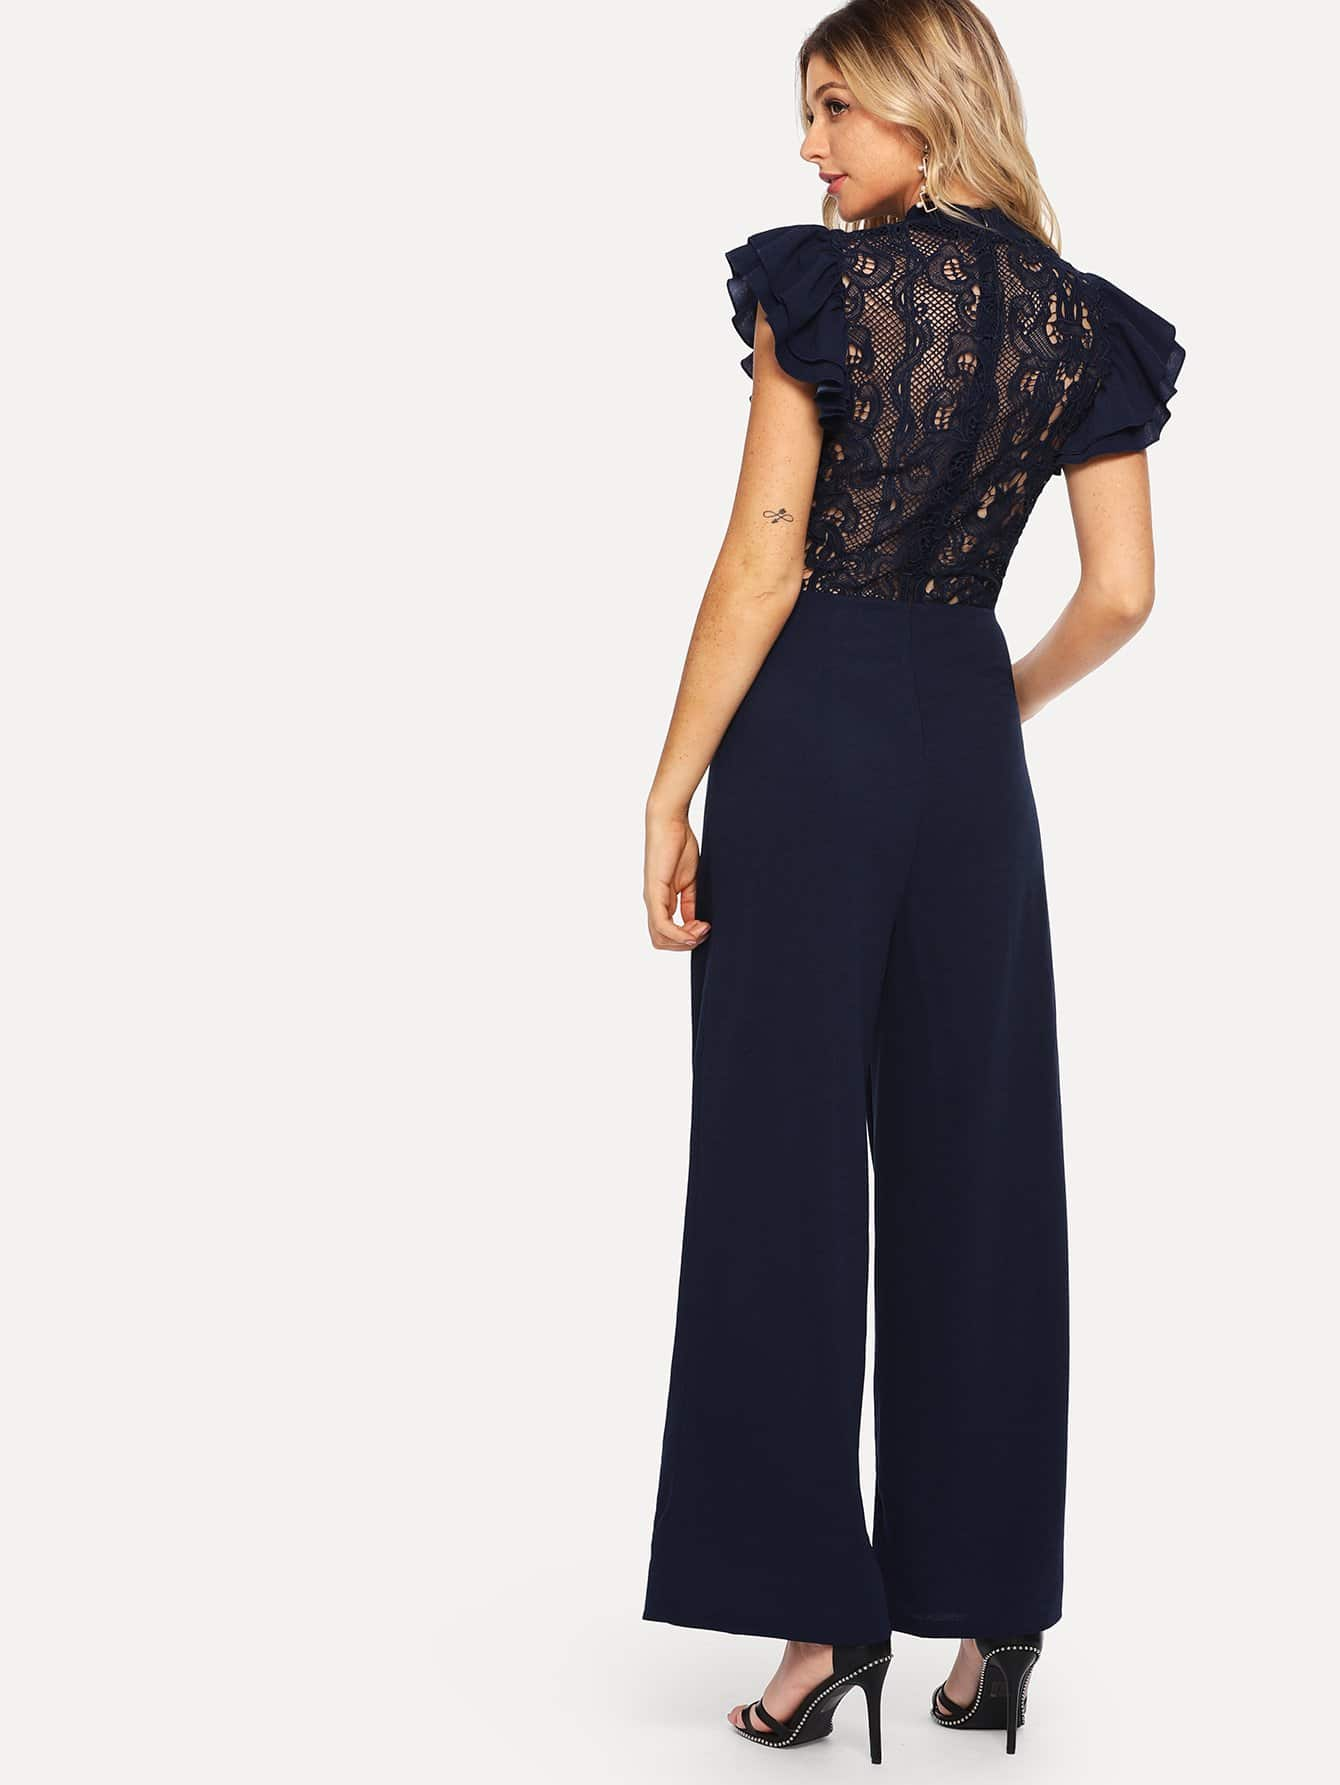 Embroidered Ruffle Mock Neck Belted Jumpsuit choker neck embroidered ruffle trim jumpsuit